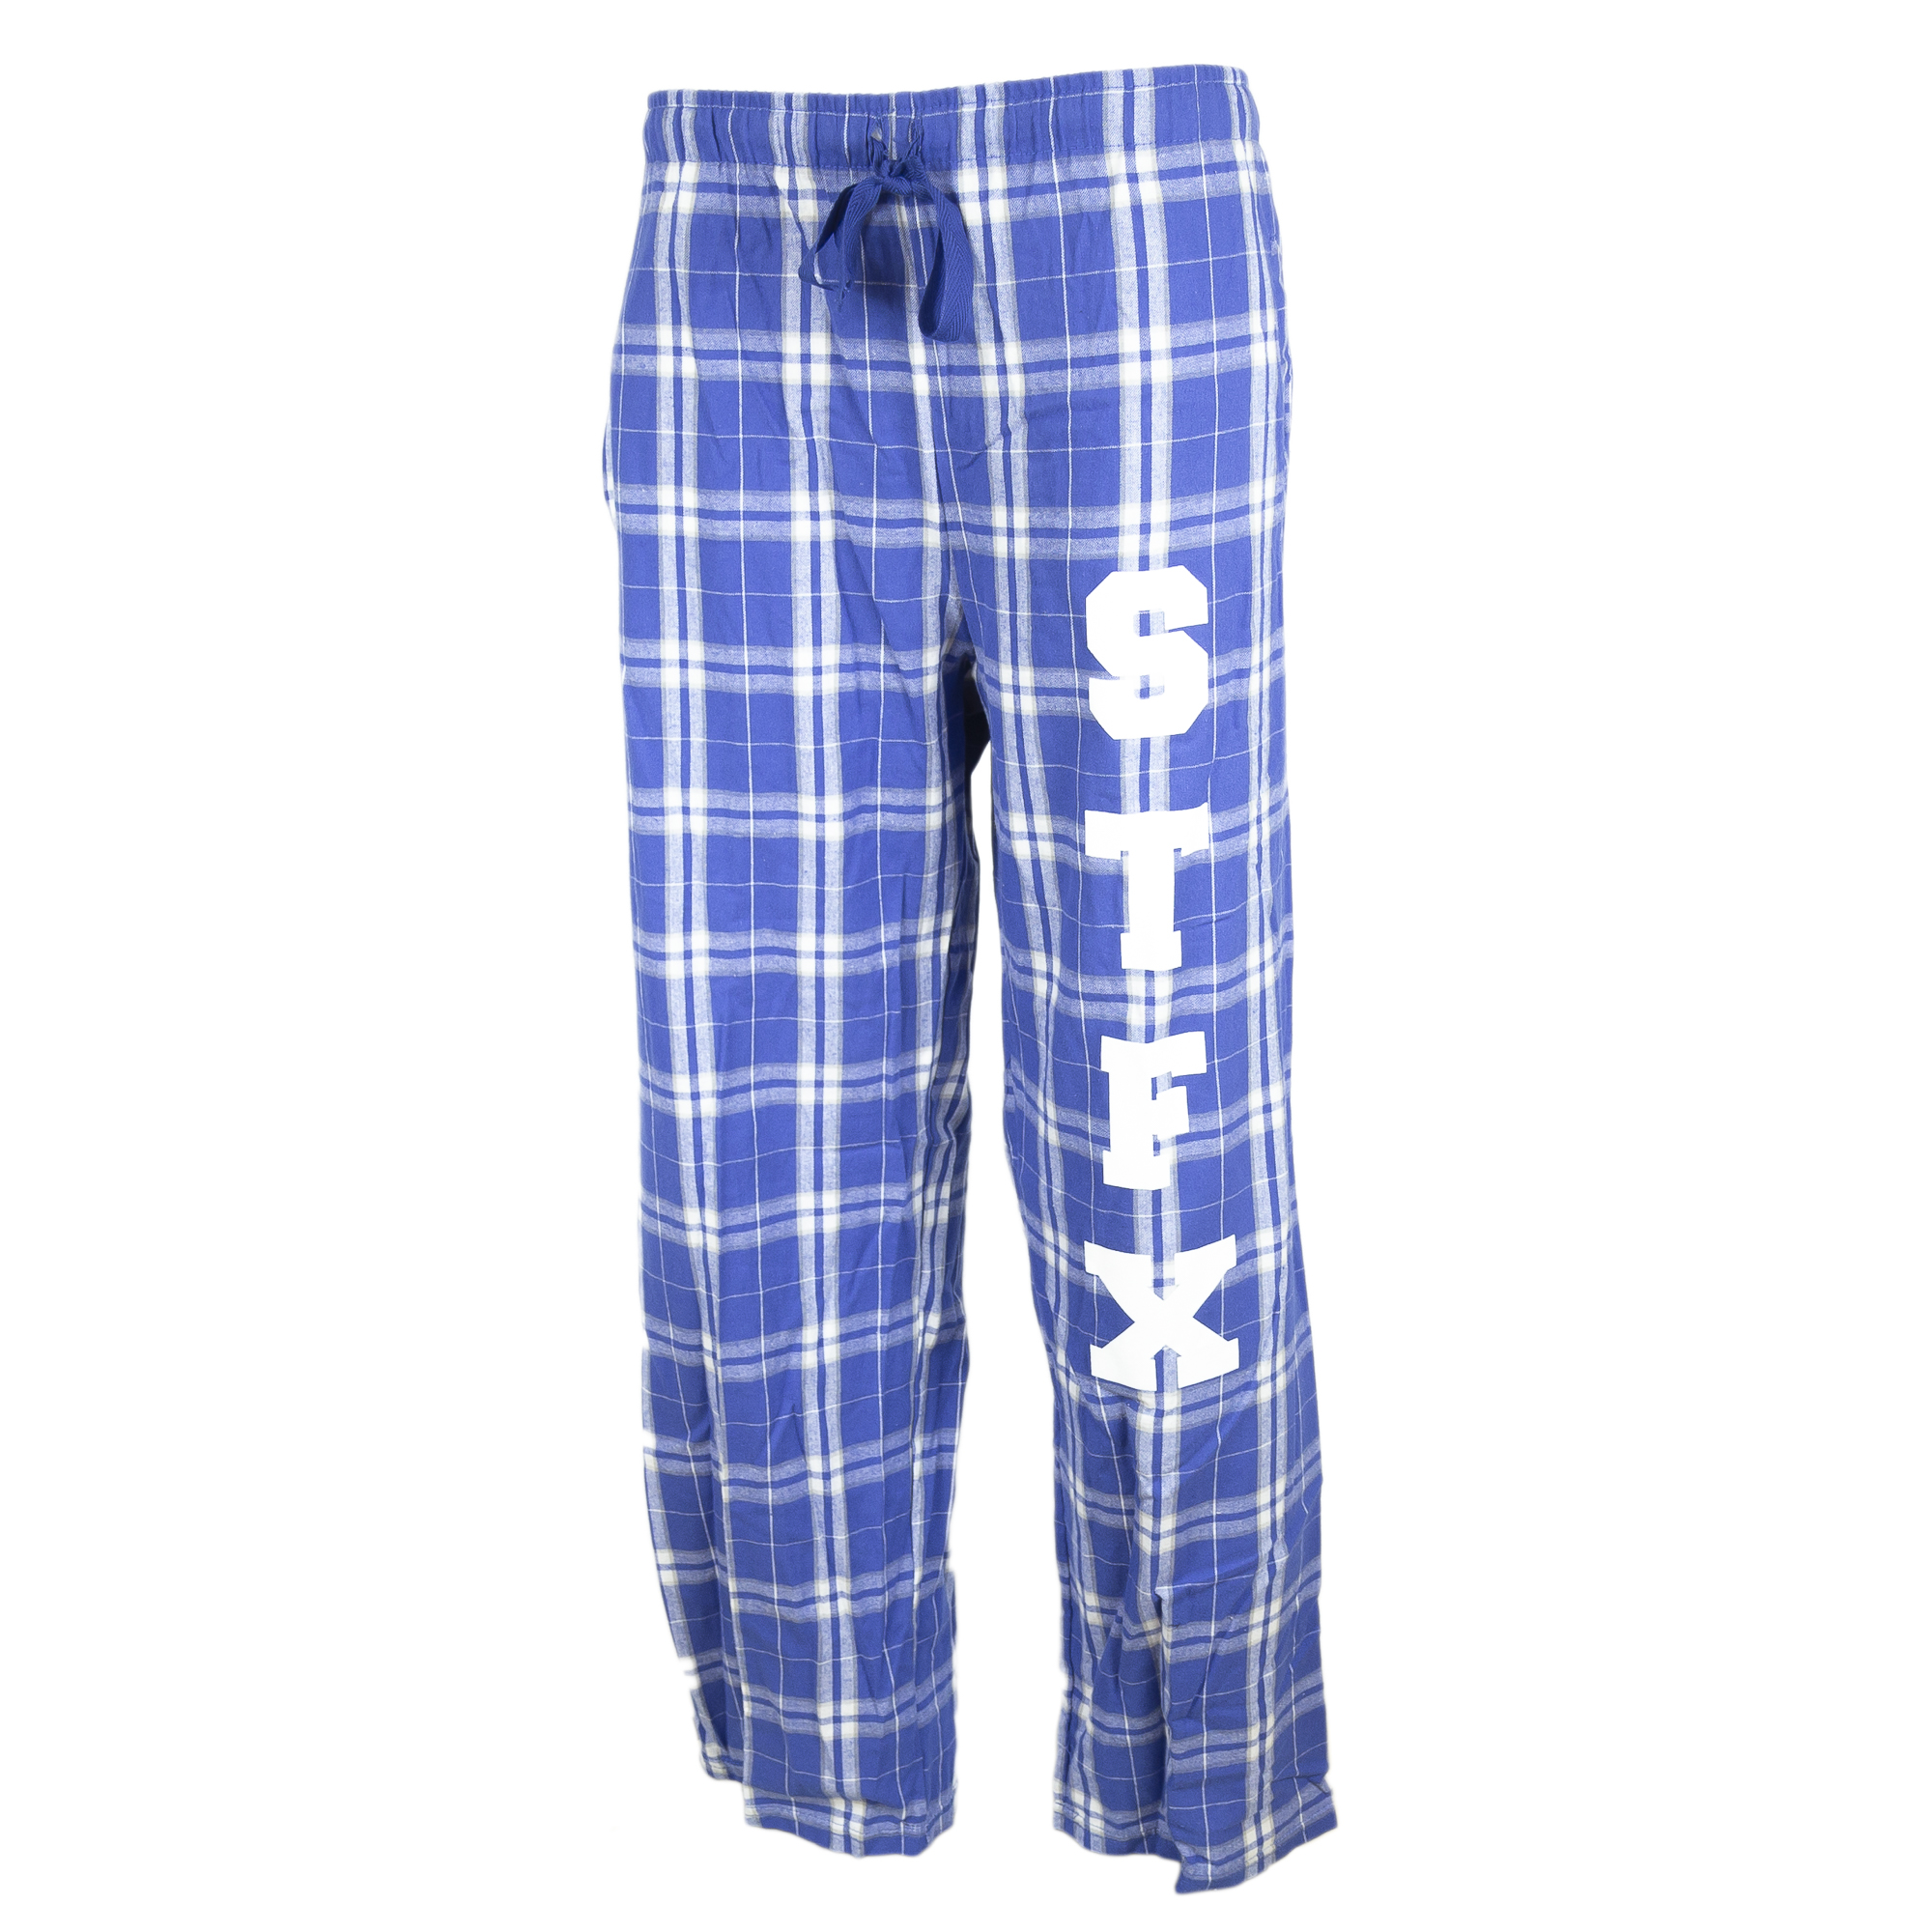 Home Pants STFX flannel pyjamas. 🔍. Previous  Next 81bfa6eea